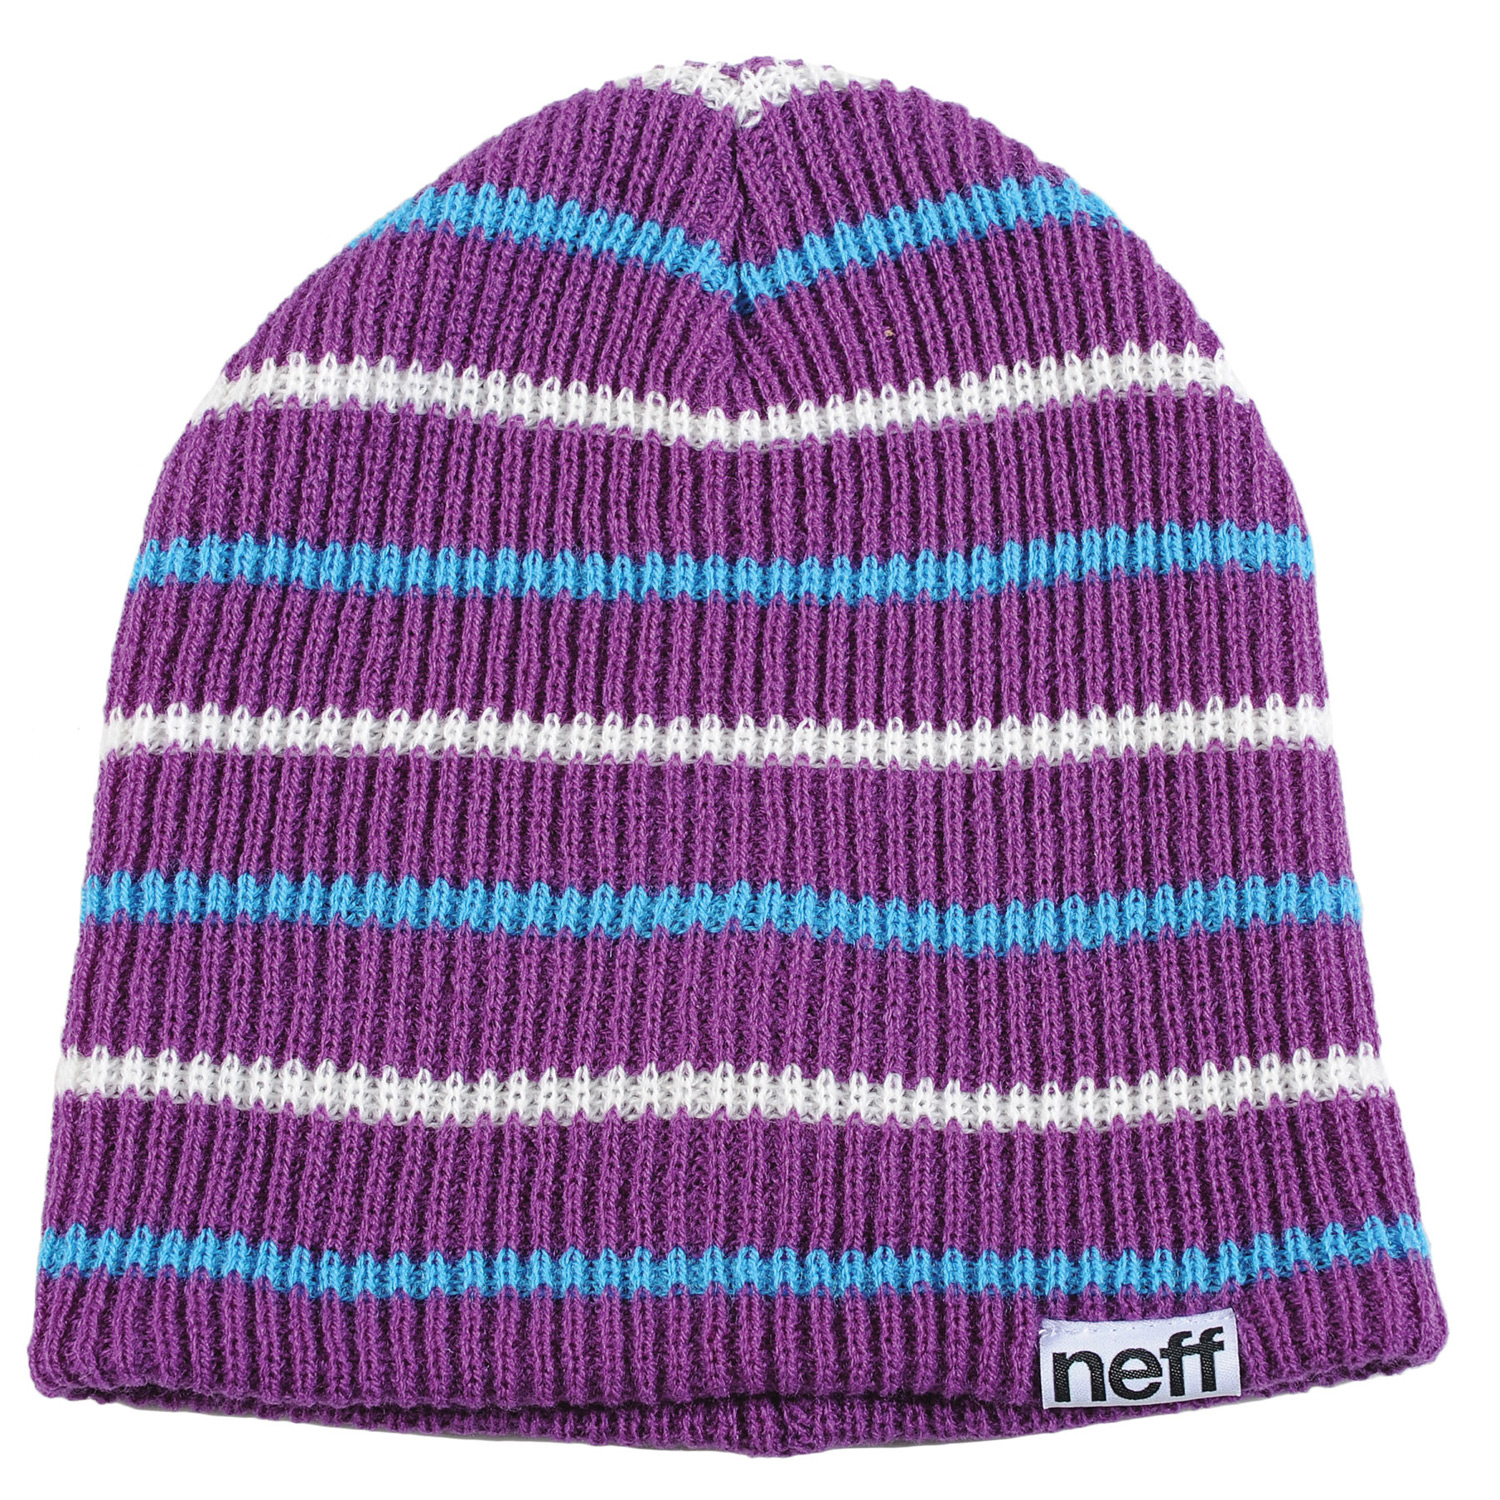 Skateboard 100% AcrylicKey Features of the Neff Daily Multistripe Beanie: 100% Acrylic - $18.00